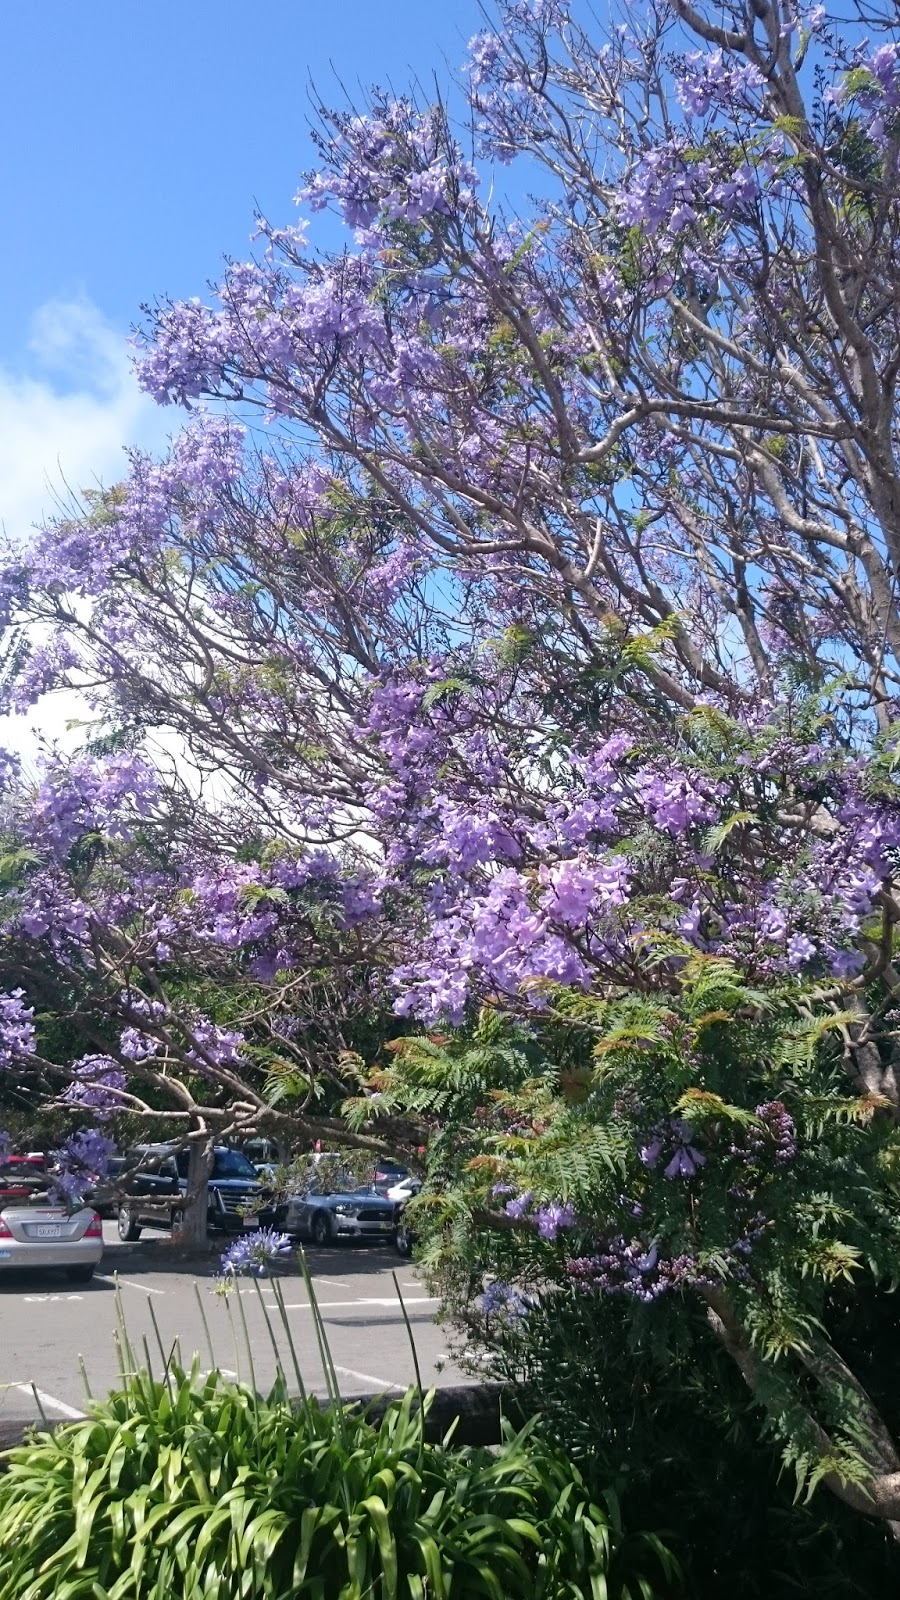 Vibrant beautiful lilac flowers in Sausalito